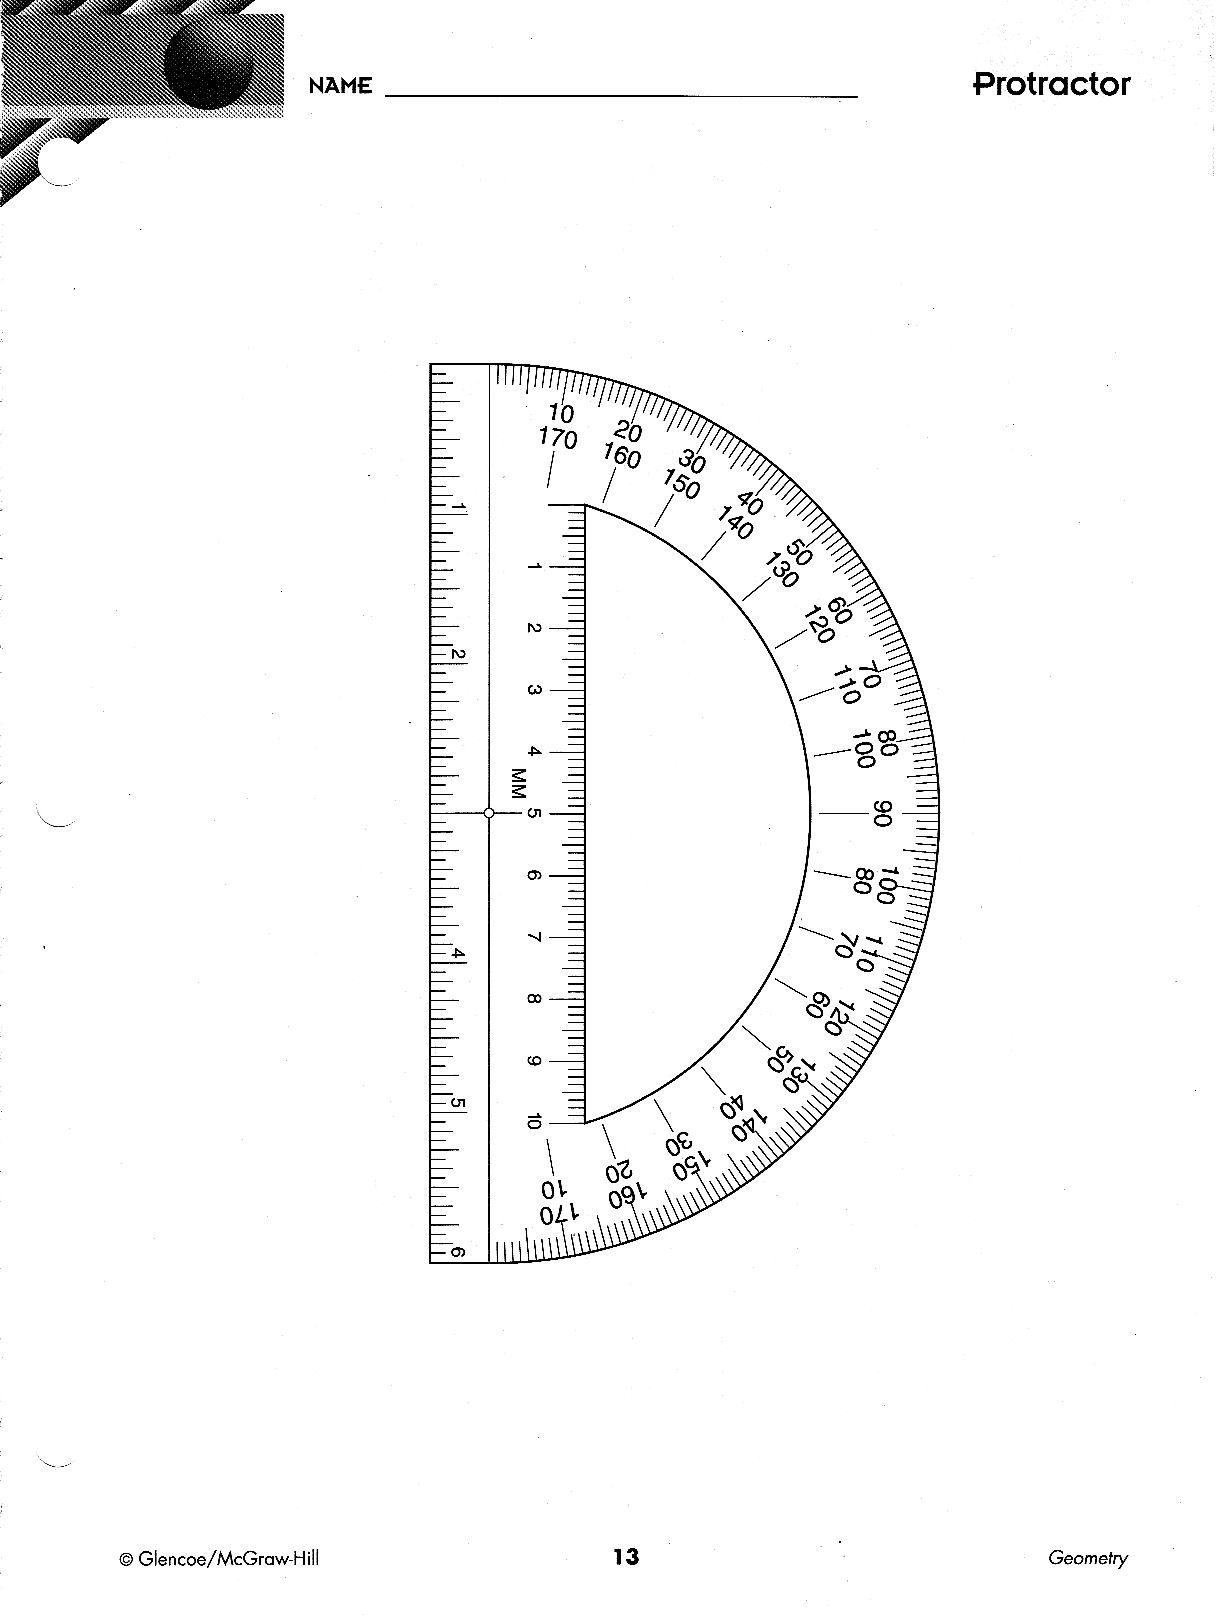 worksheet Print Protractor precalculus paper and patterns 13 protractor print on clear plastic jpg